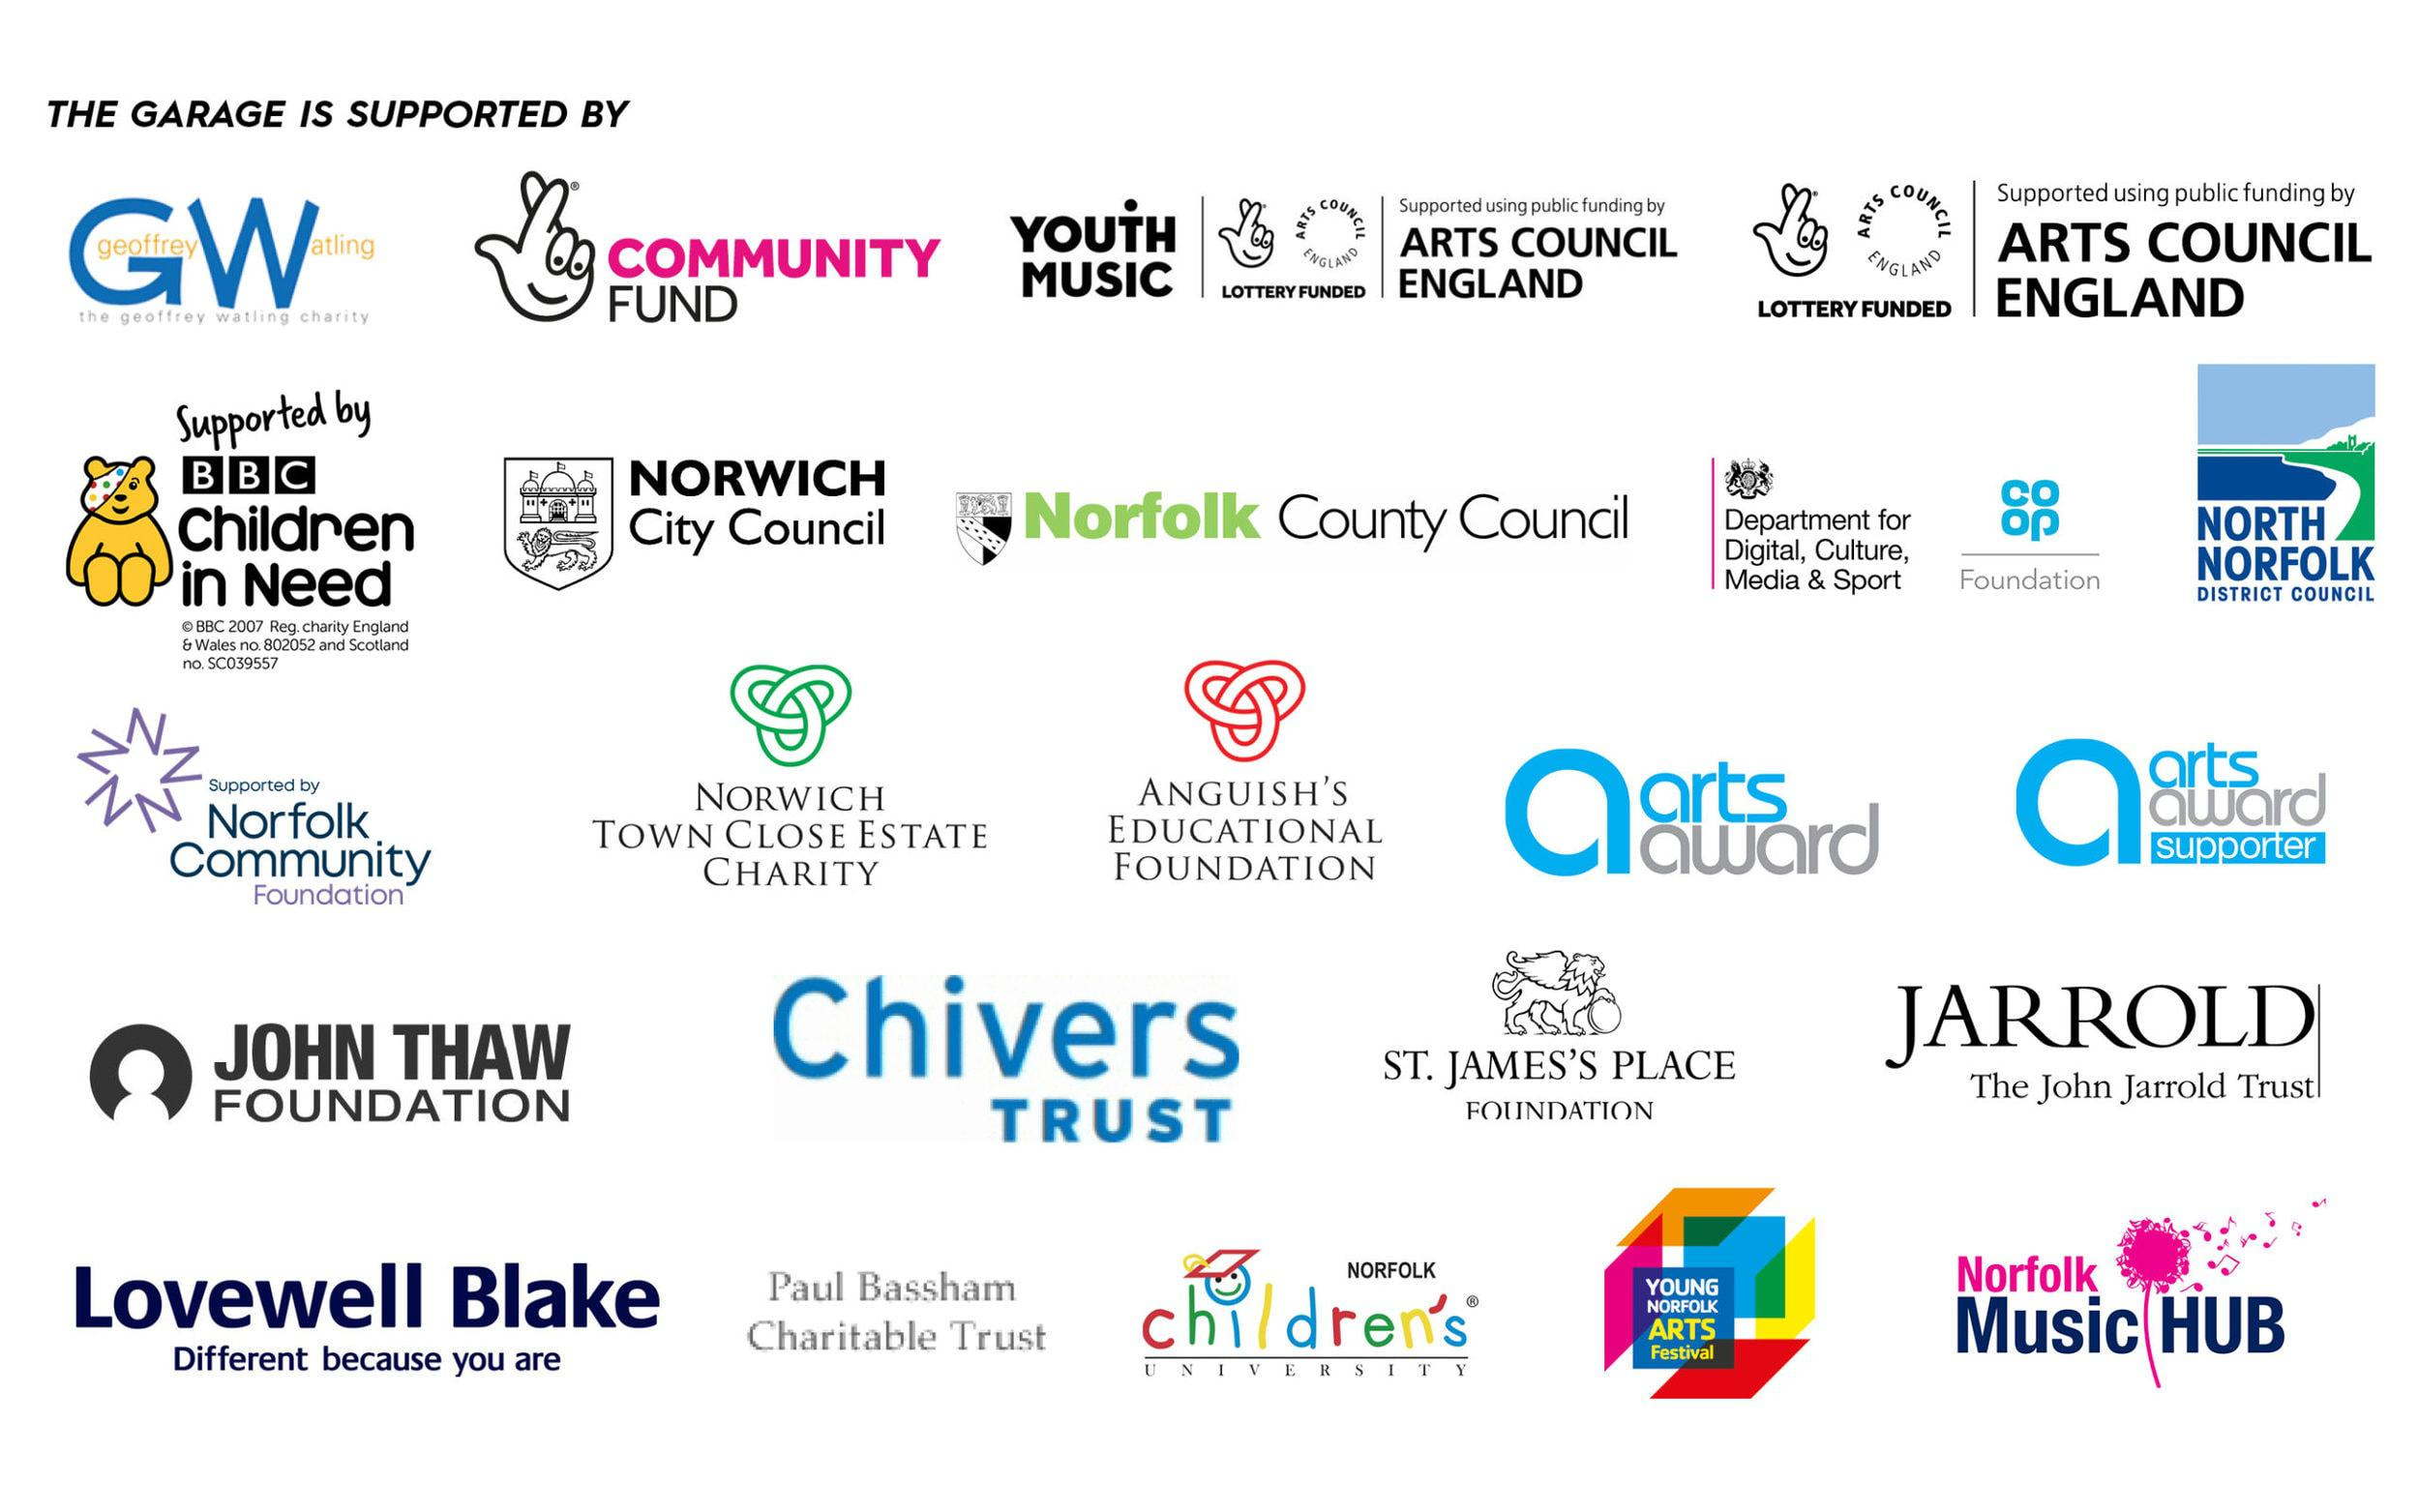 Image of funders/supporters of The Garage